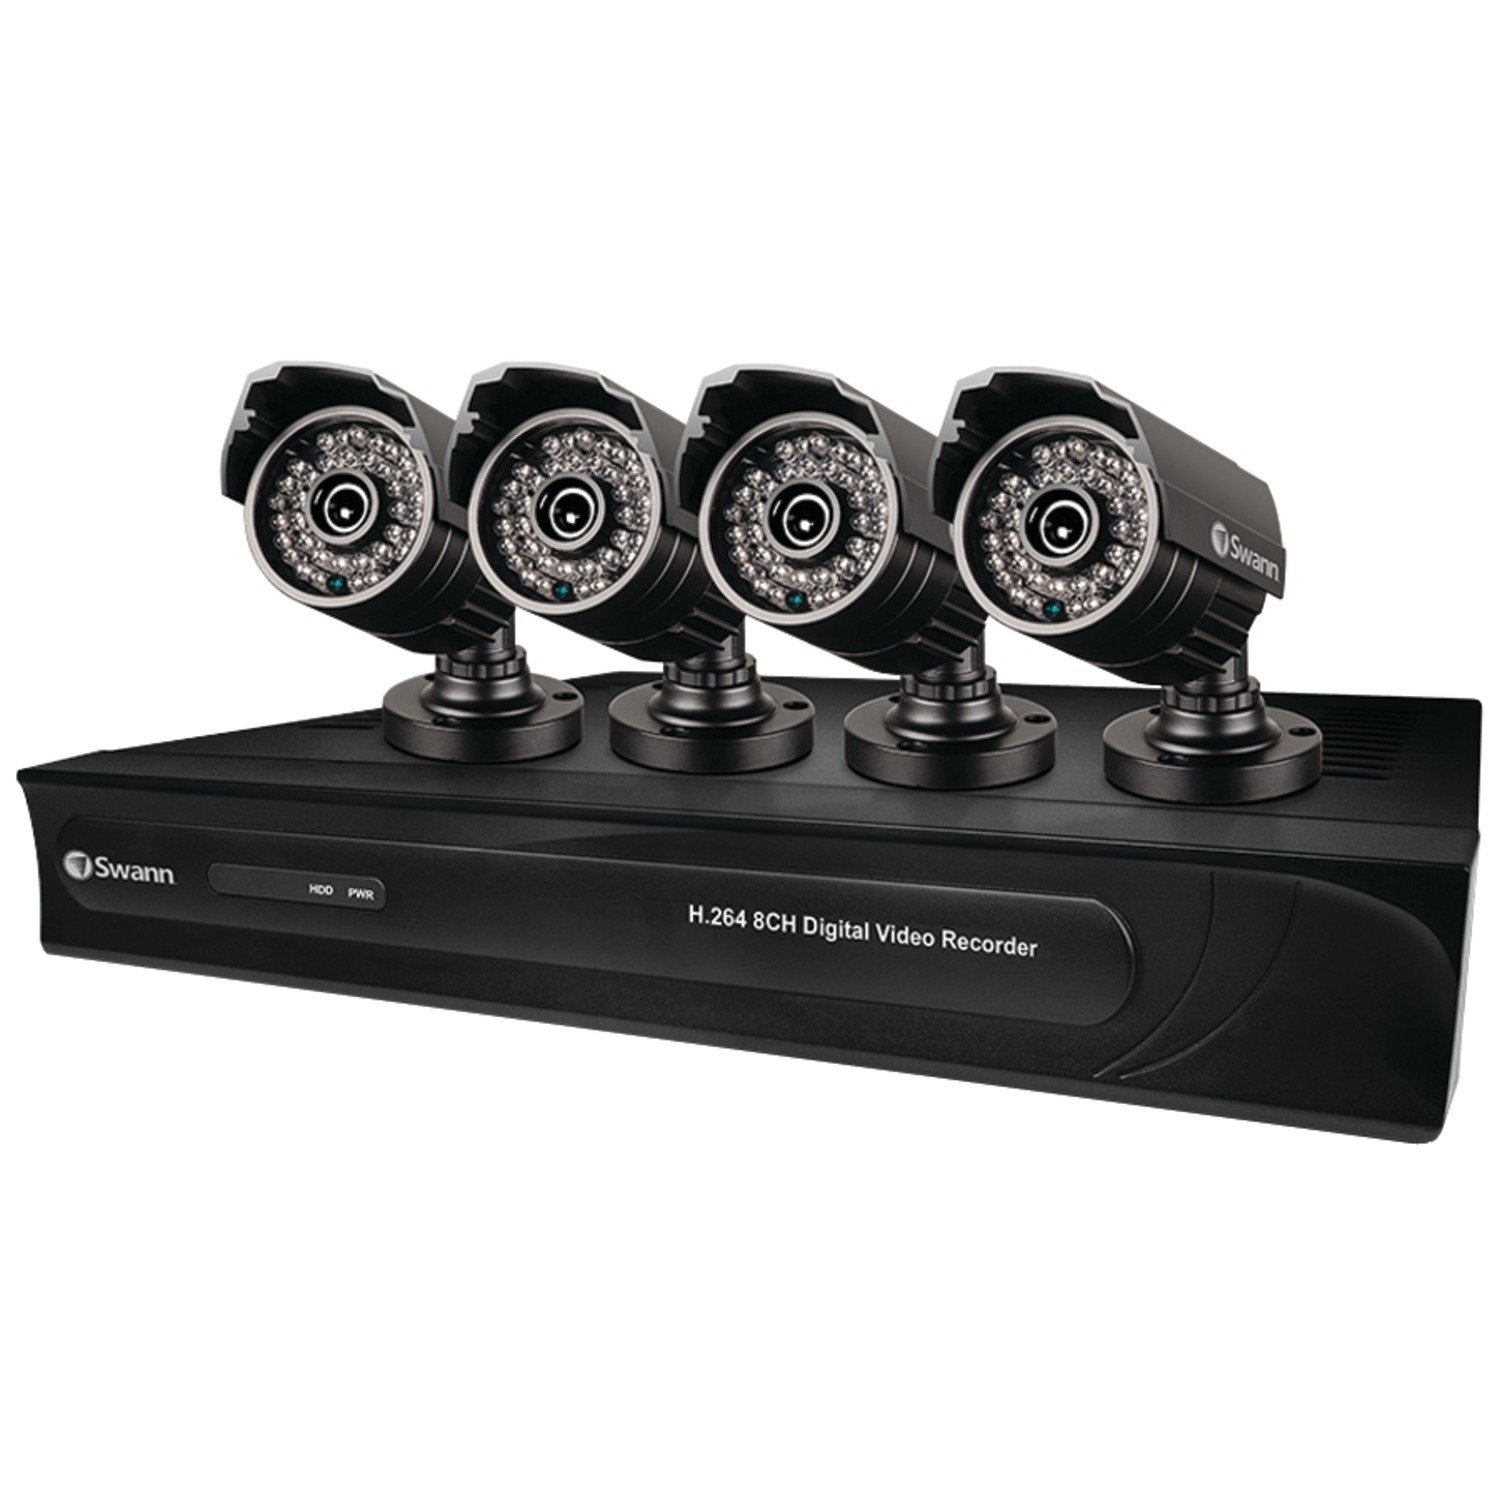 Swann Night Vision Video Security